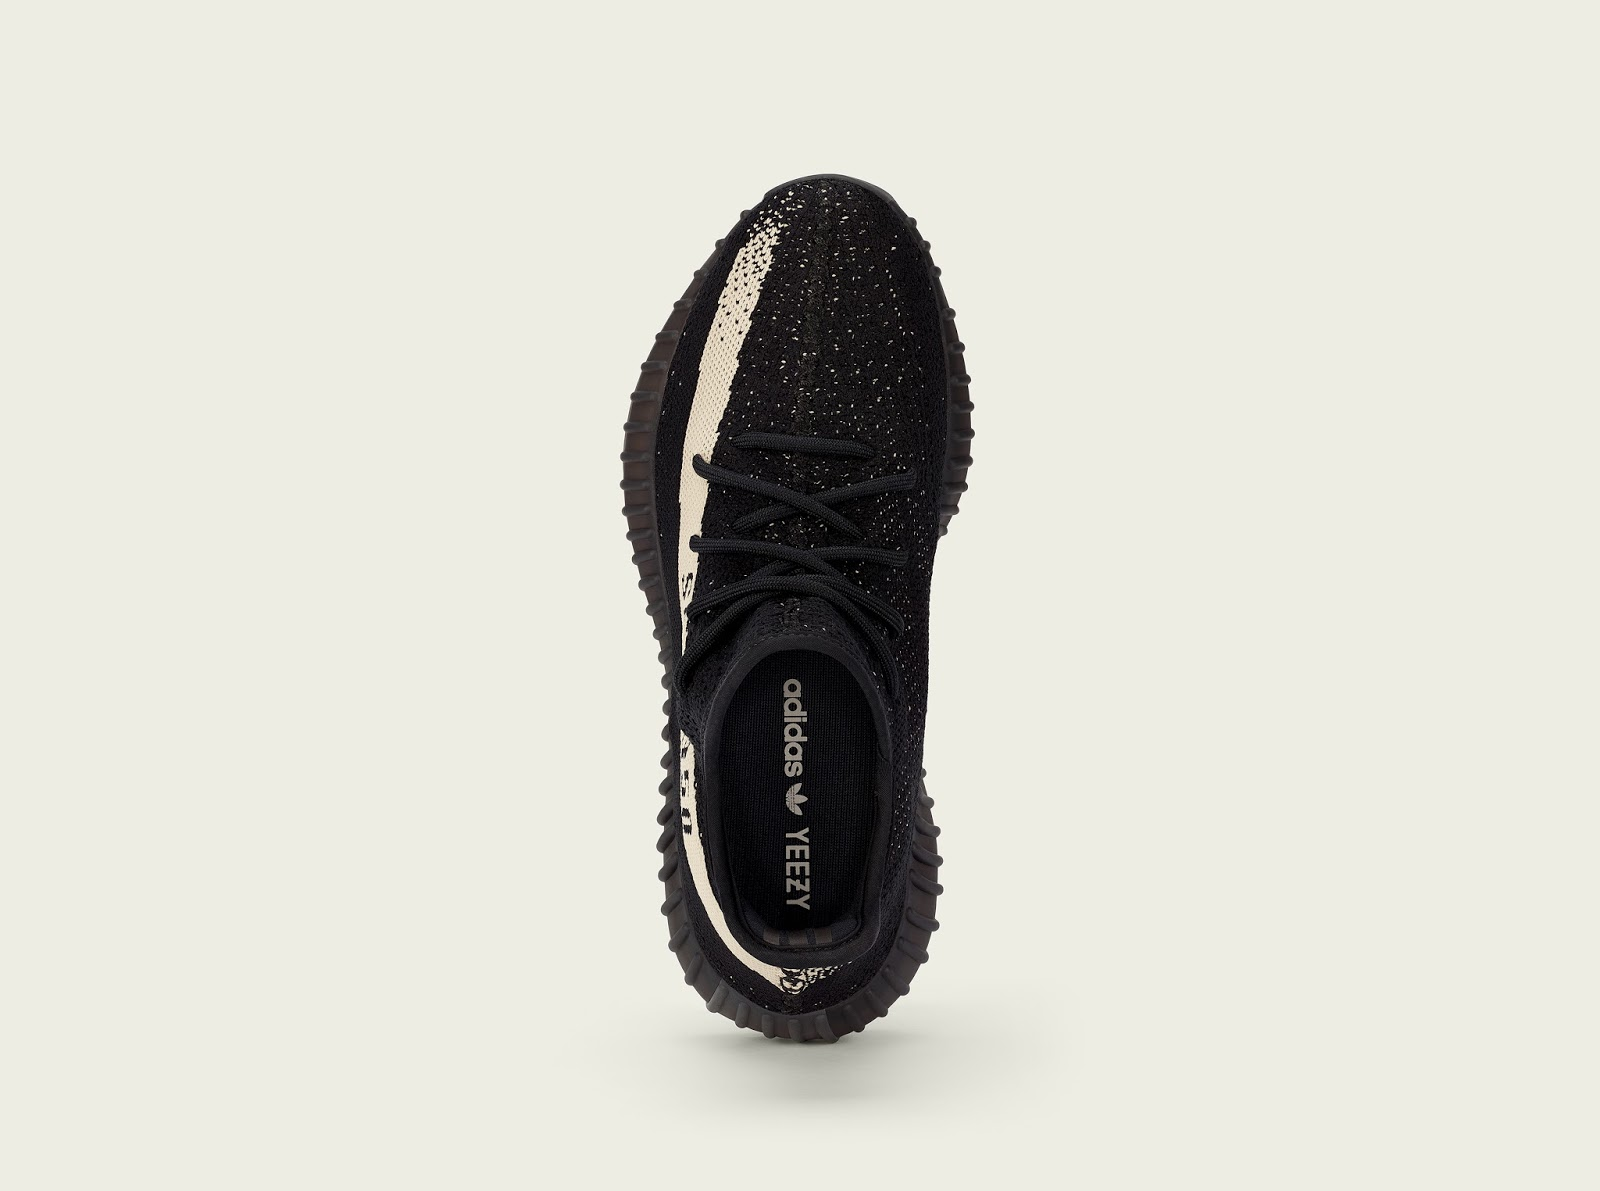 50567a39c Swag Craze  Sneakers Dropping This Weekend  KANYE WEST + adidas ...